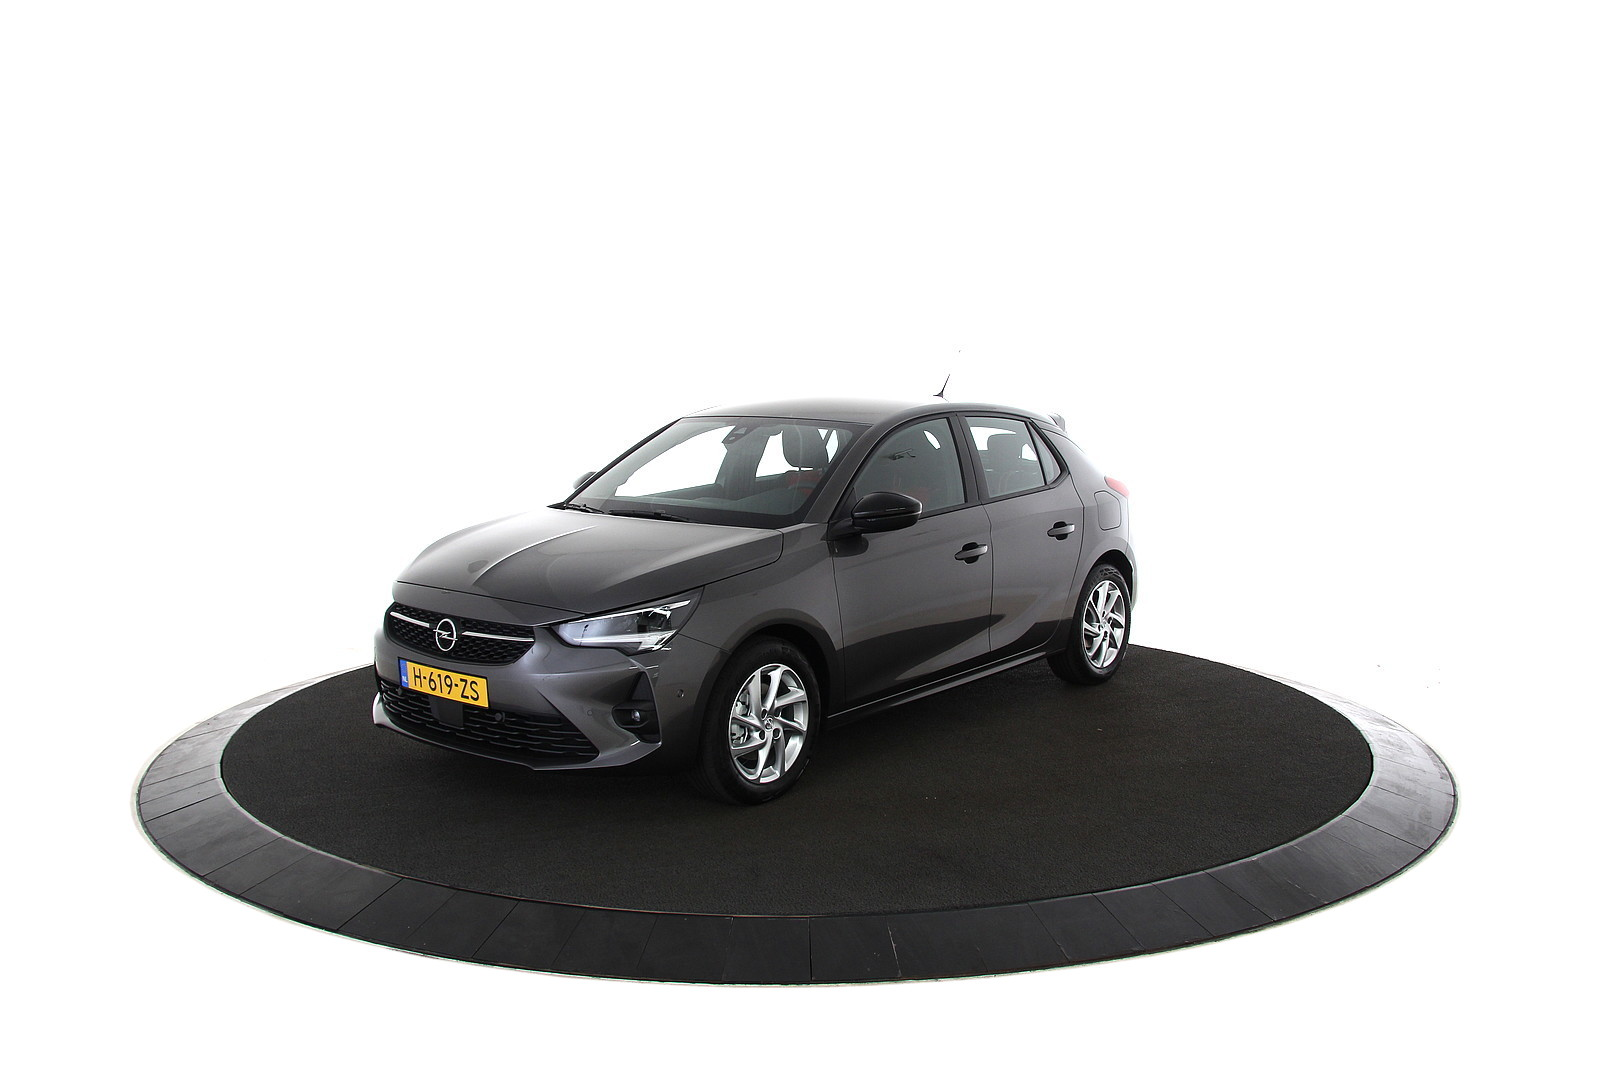 Opel Corsa 1.2 GS Line Automaat